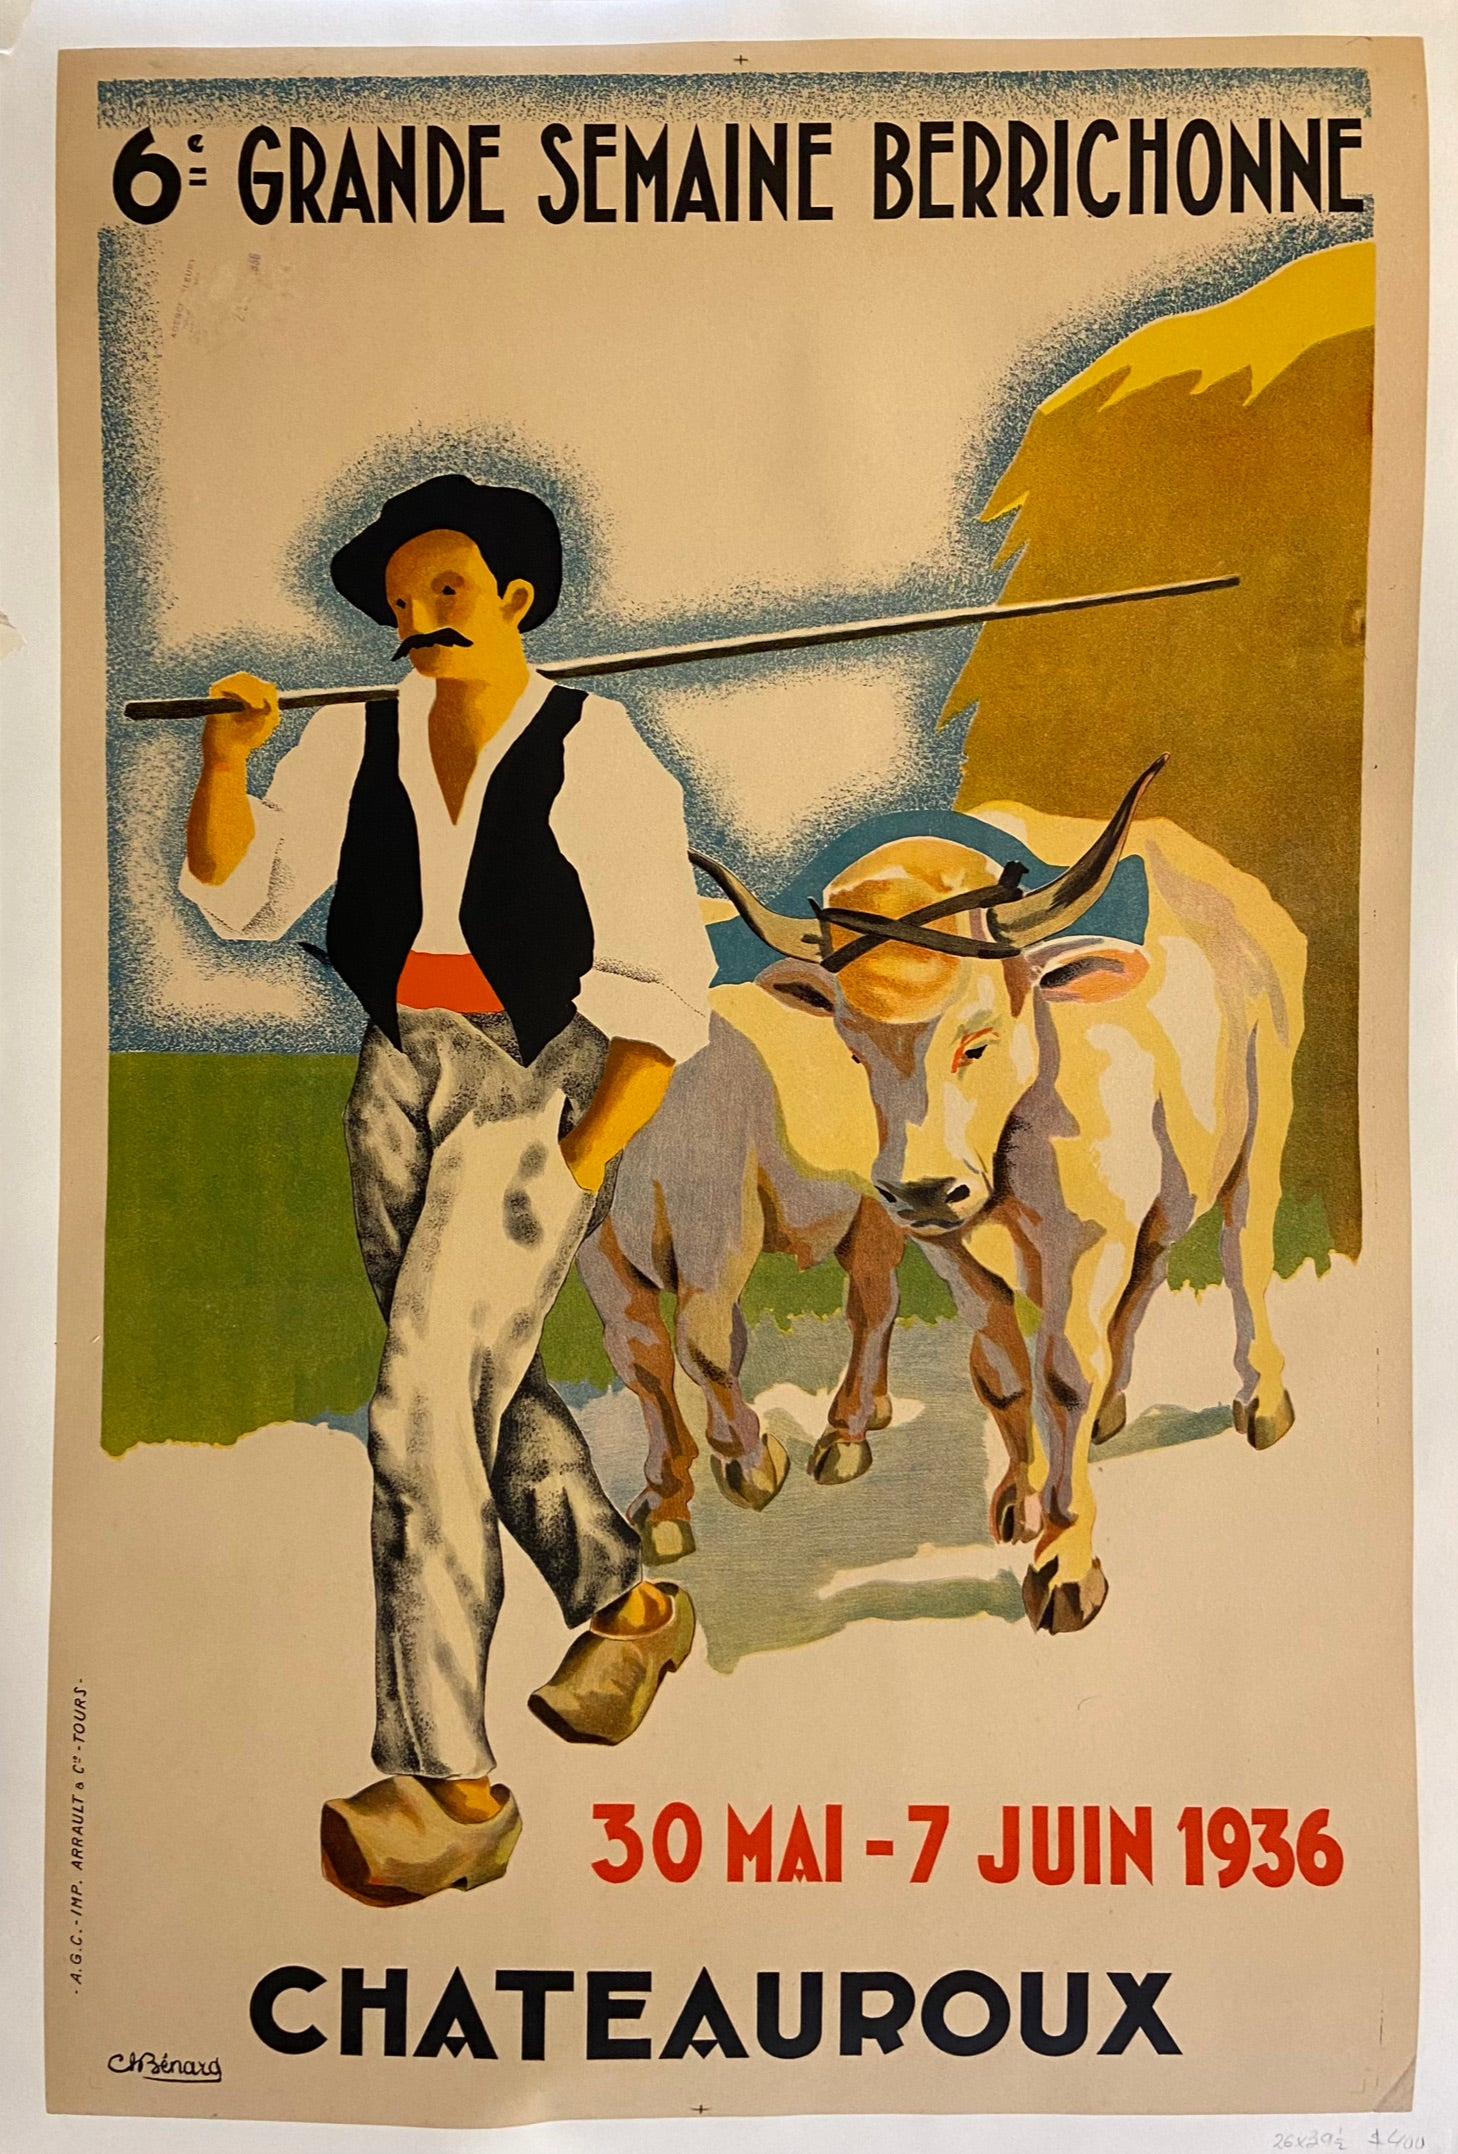 Poster of a farmer leading his cattle pulling a wagon of hay